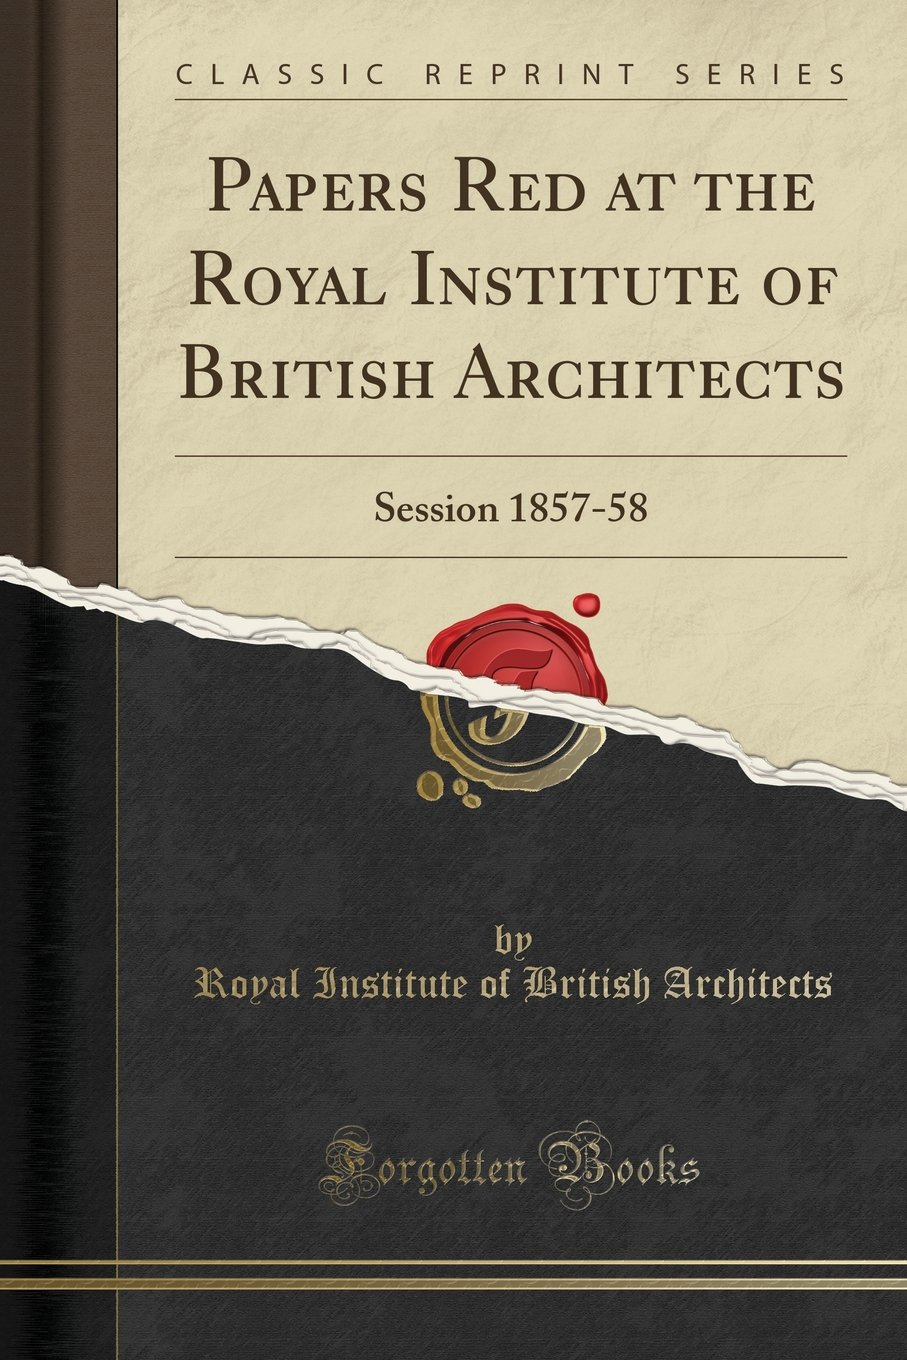 Download Papers Red at the Royal Institute of British Architects: Session 1857-58 (Classic Reprint) ebook